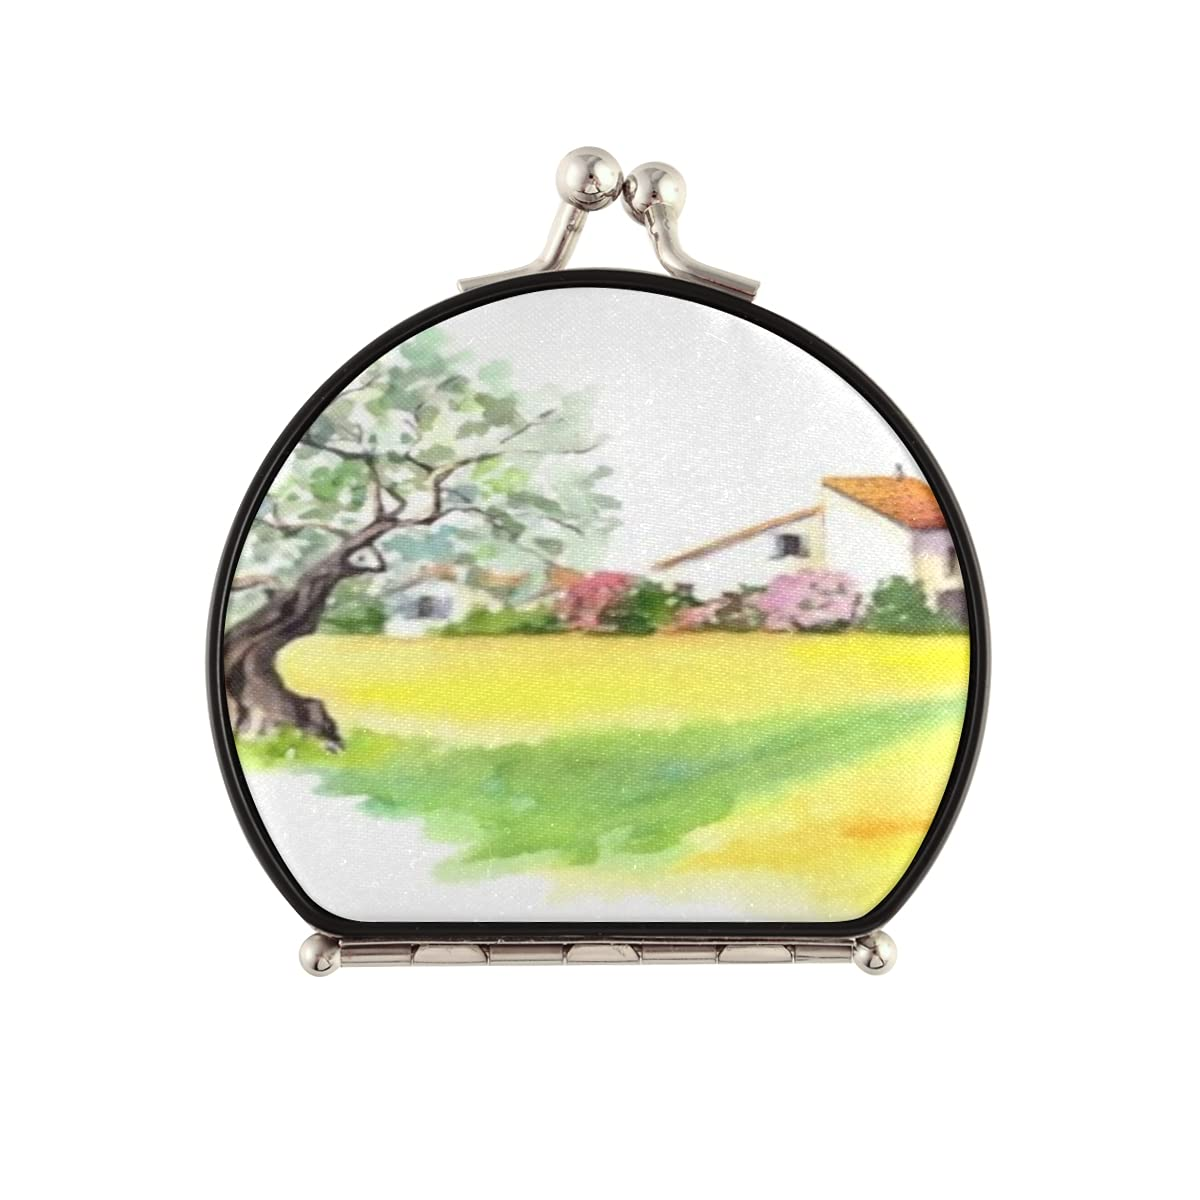 online shop Magnifying Compact Cosmetic Mirror Rural Farm Free shipping anywhere in the nation Provencal House Ol